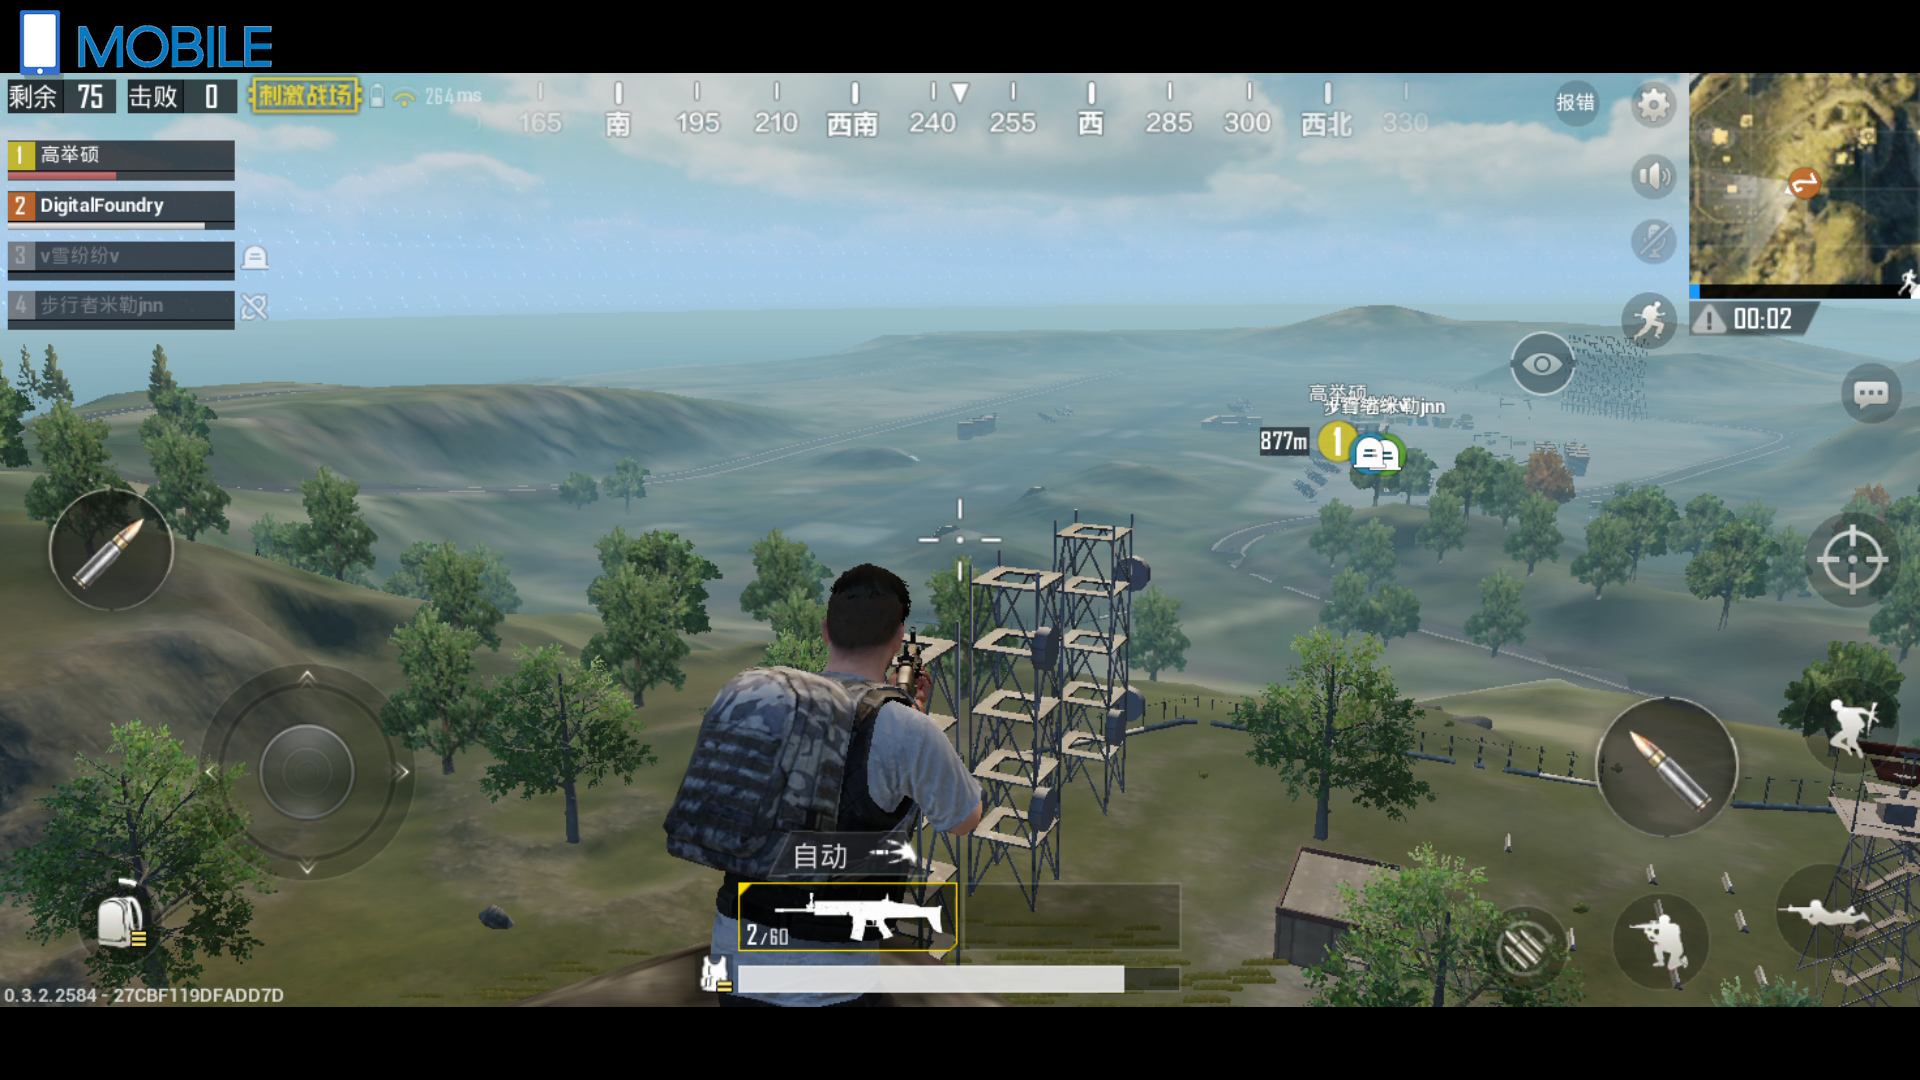 Pubg Mobile Hd Vs Smooth: PUBG Mobile Analysed: Top-end Smartphones Compared With PC